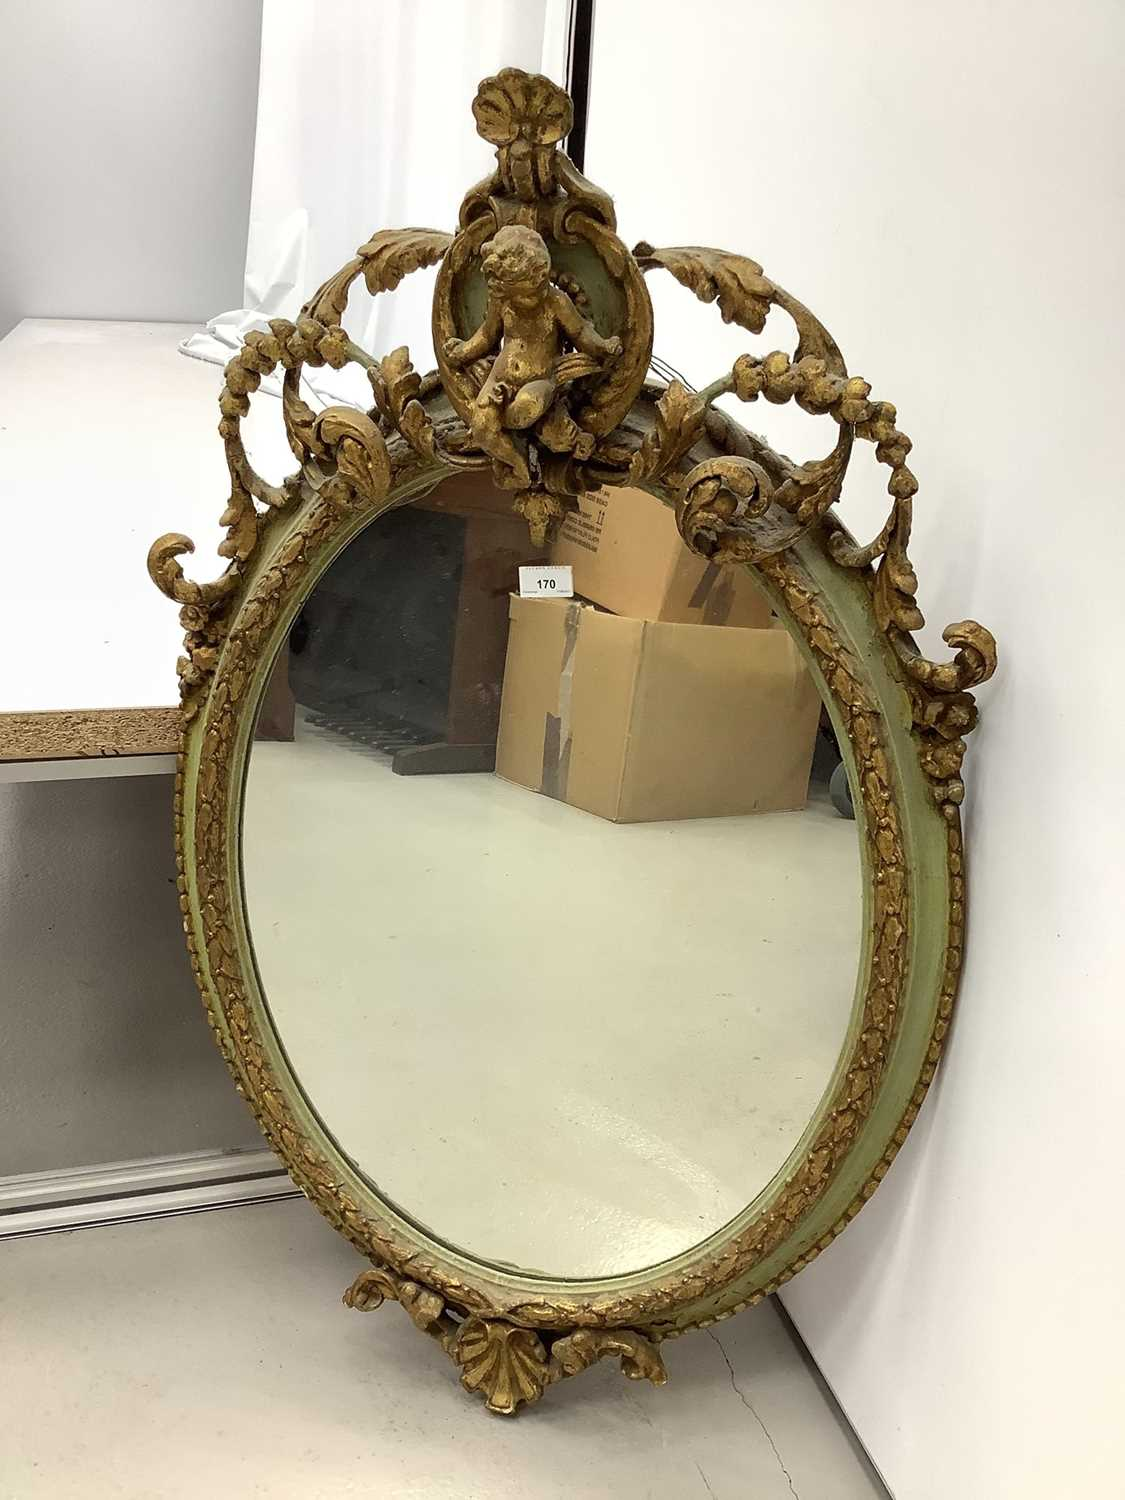 Oval wall mirror in green and gilt frame with cherub mount, 100cm x 61cm